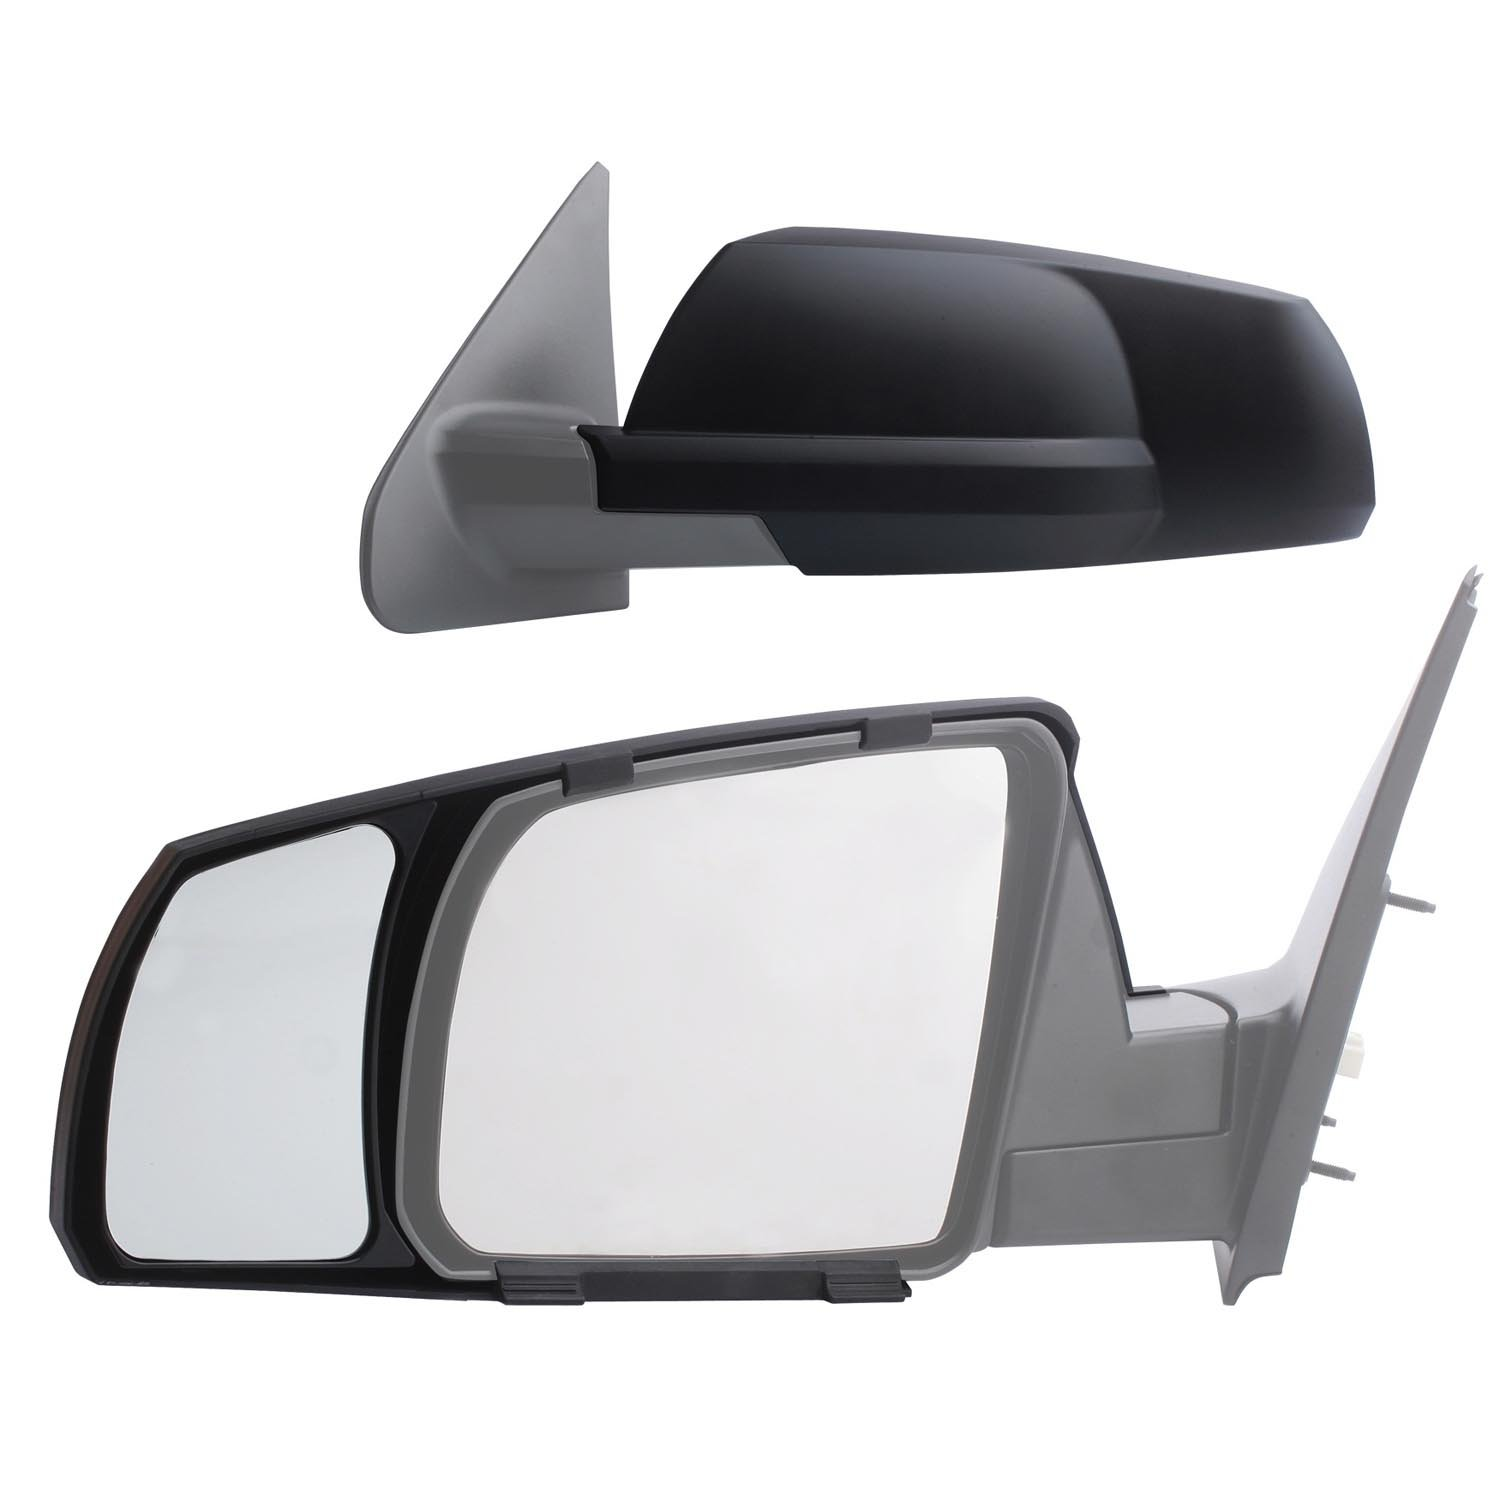 K-Source 81300 Snap-On Black Towing Mirror for Toyota Tundra/Sequoia, Pair Fit System